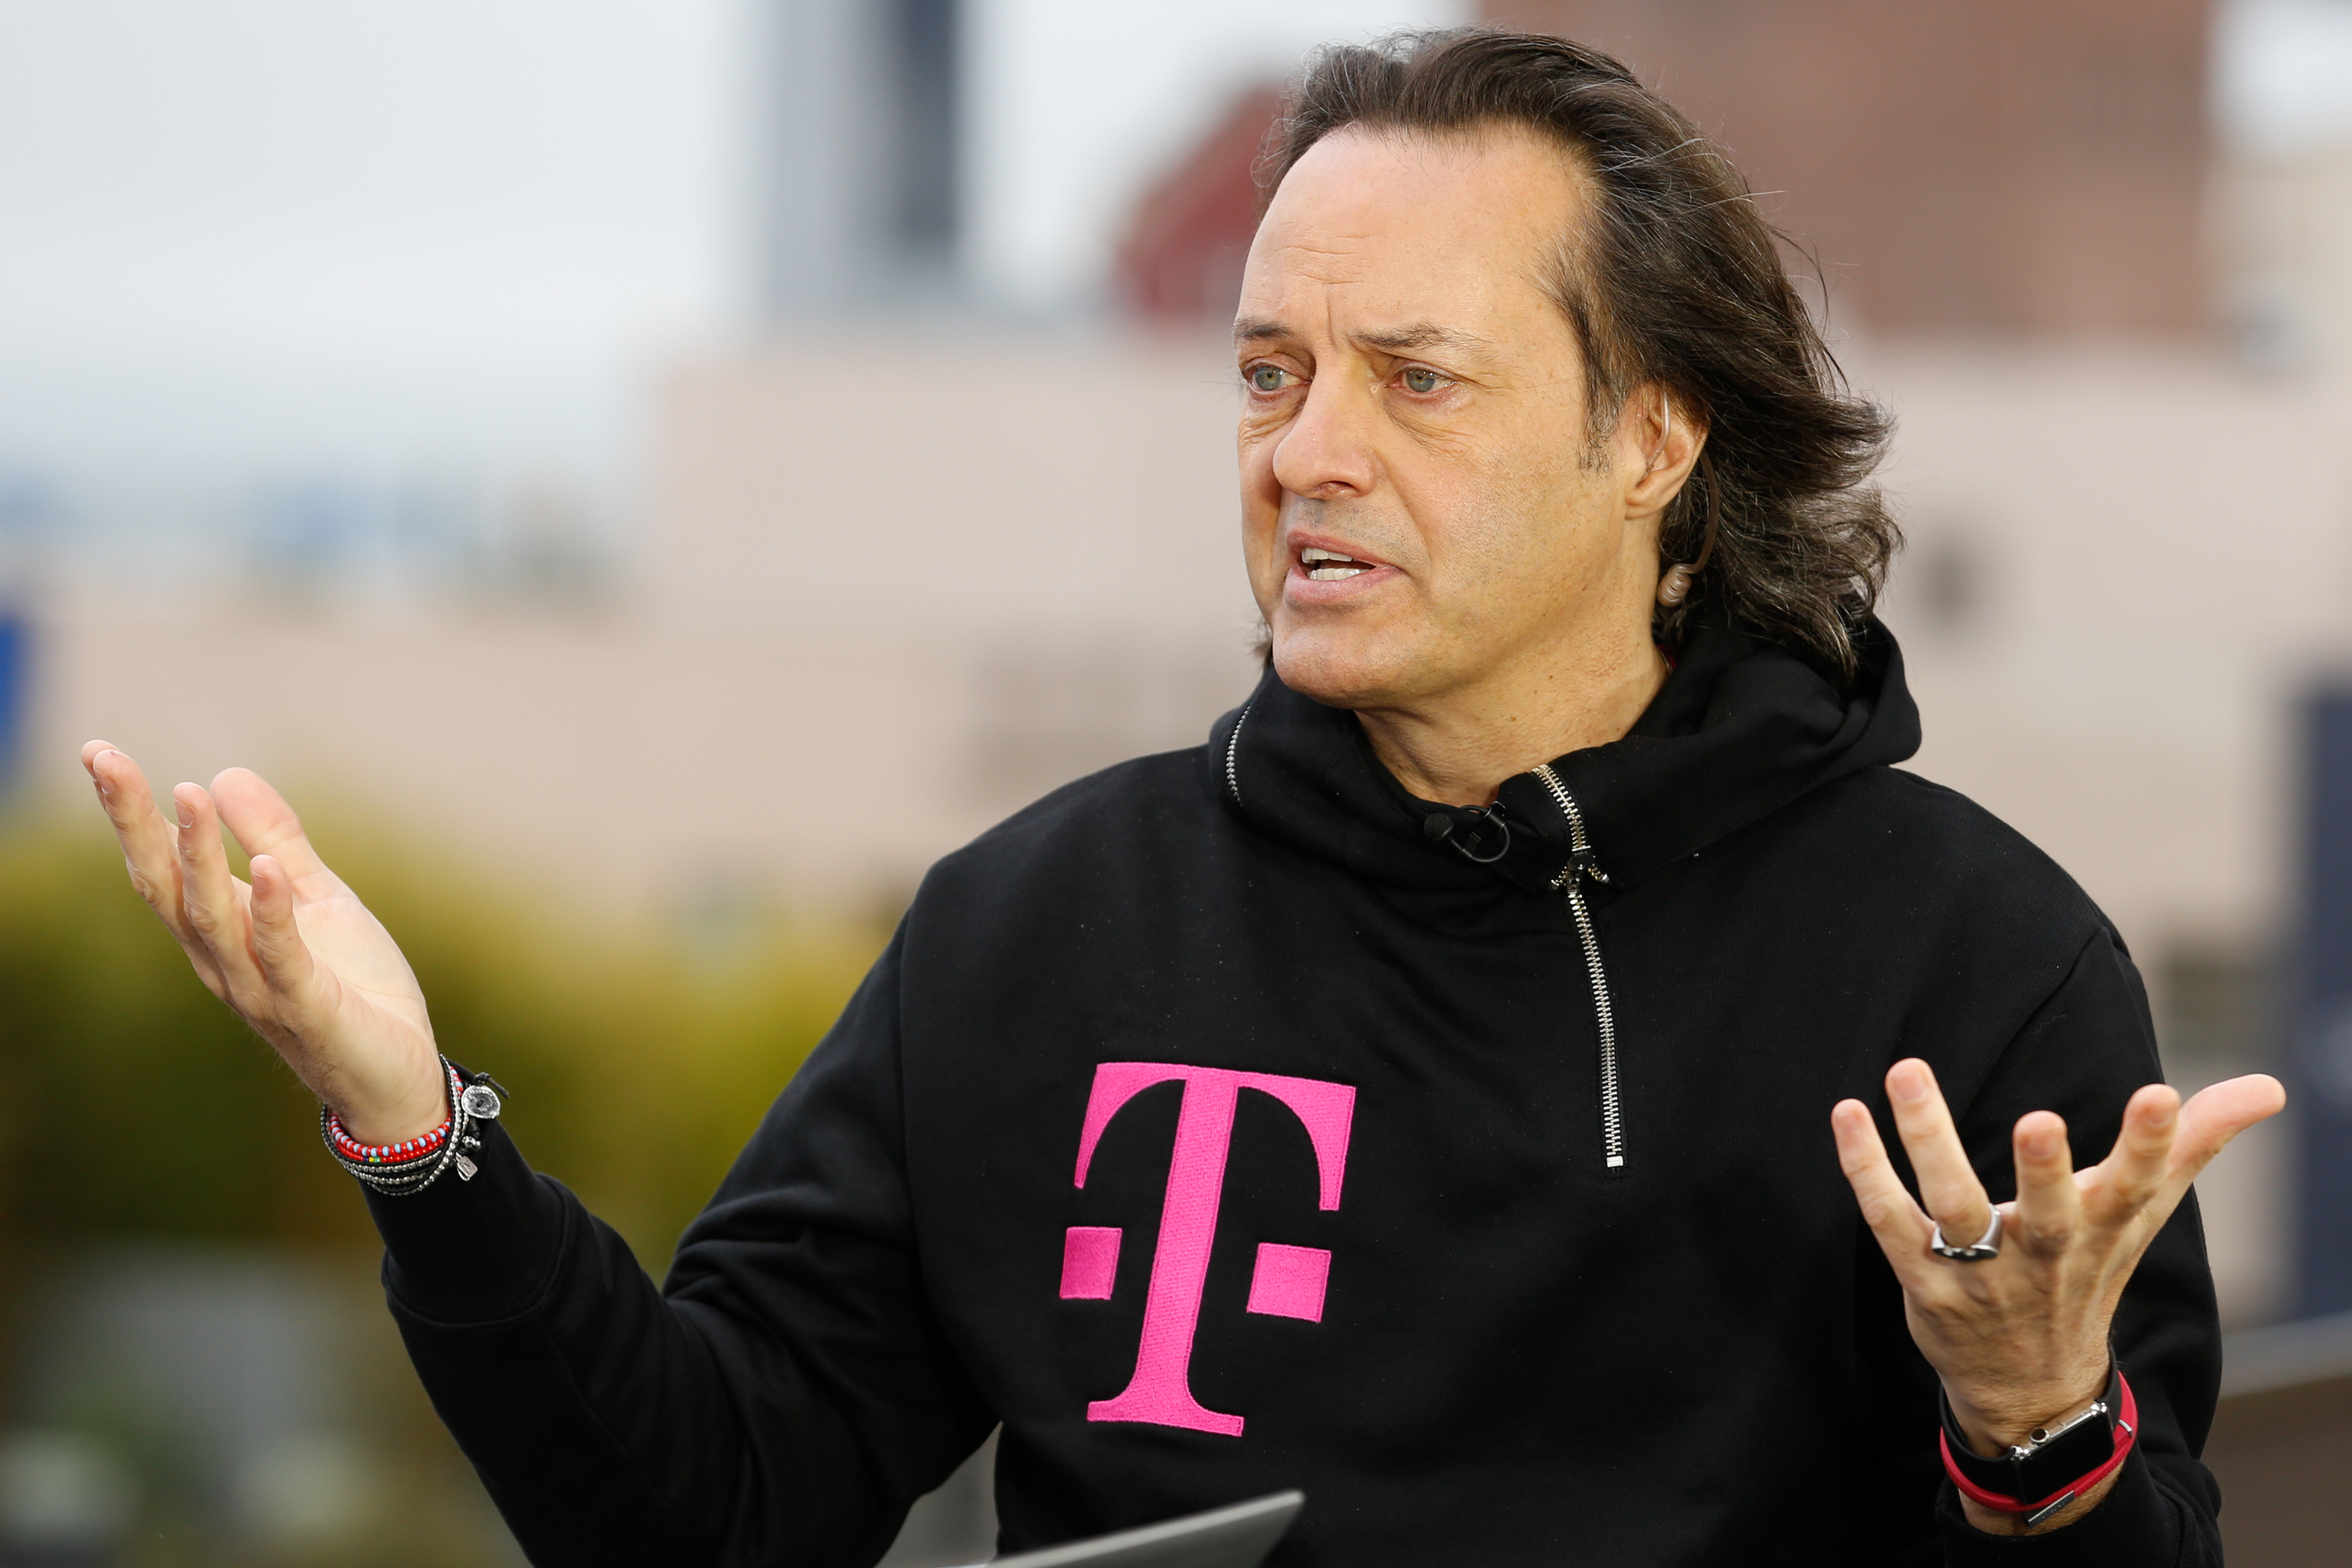 John Legere, CEO and President of T-Mobile US.